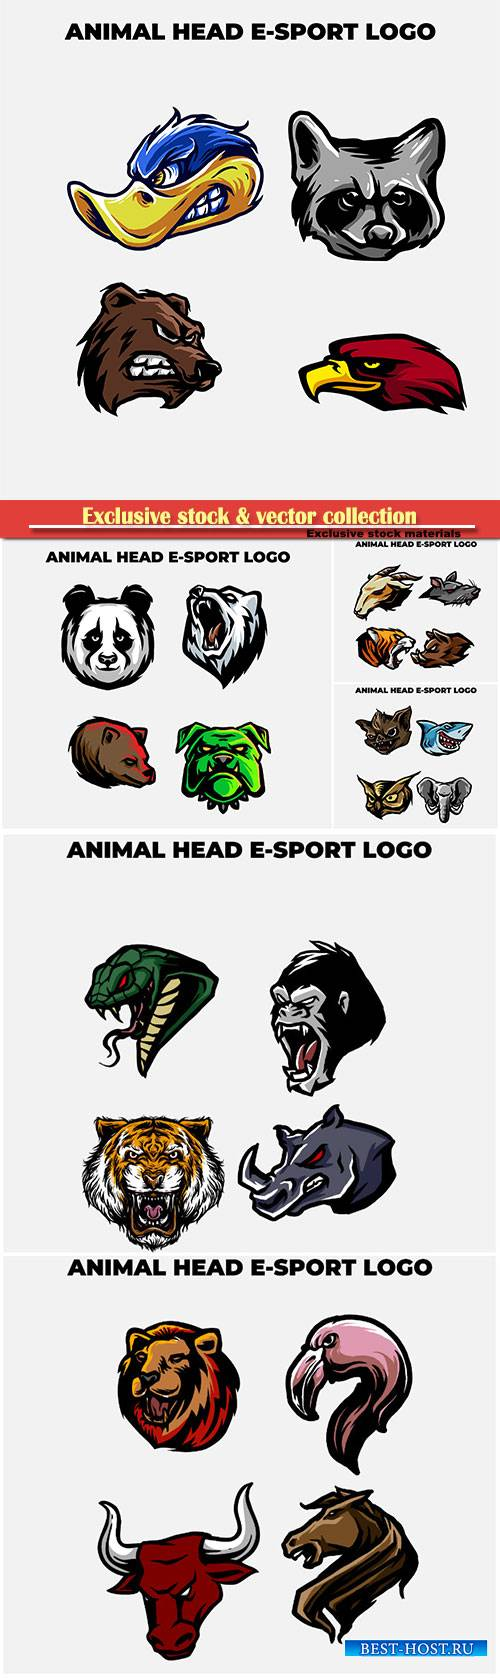 Animal head mascot logo vector